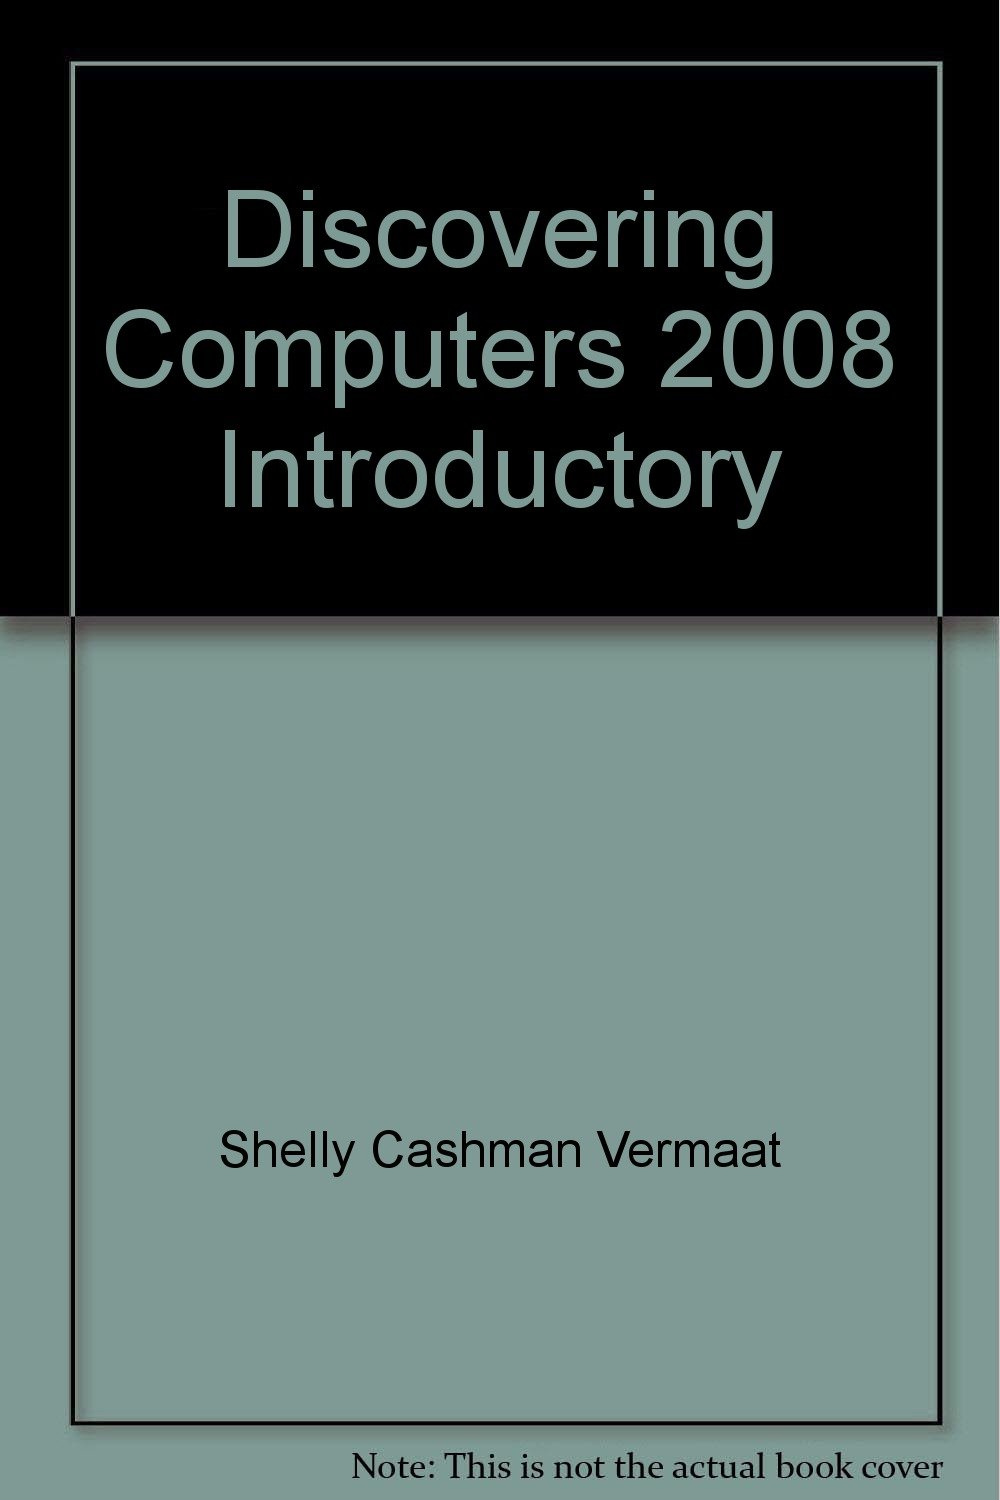 Discovering Computers 2008 Introductory pdf